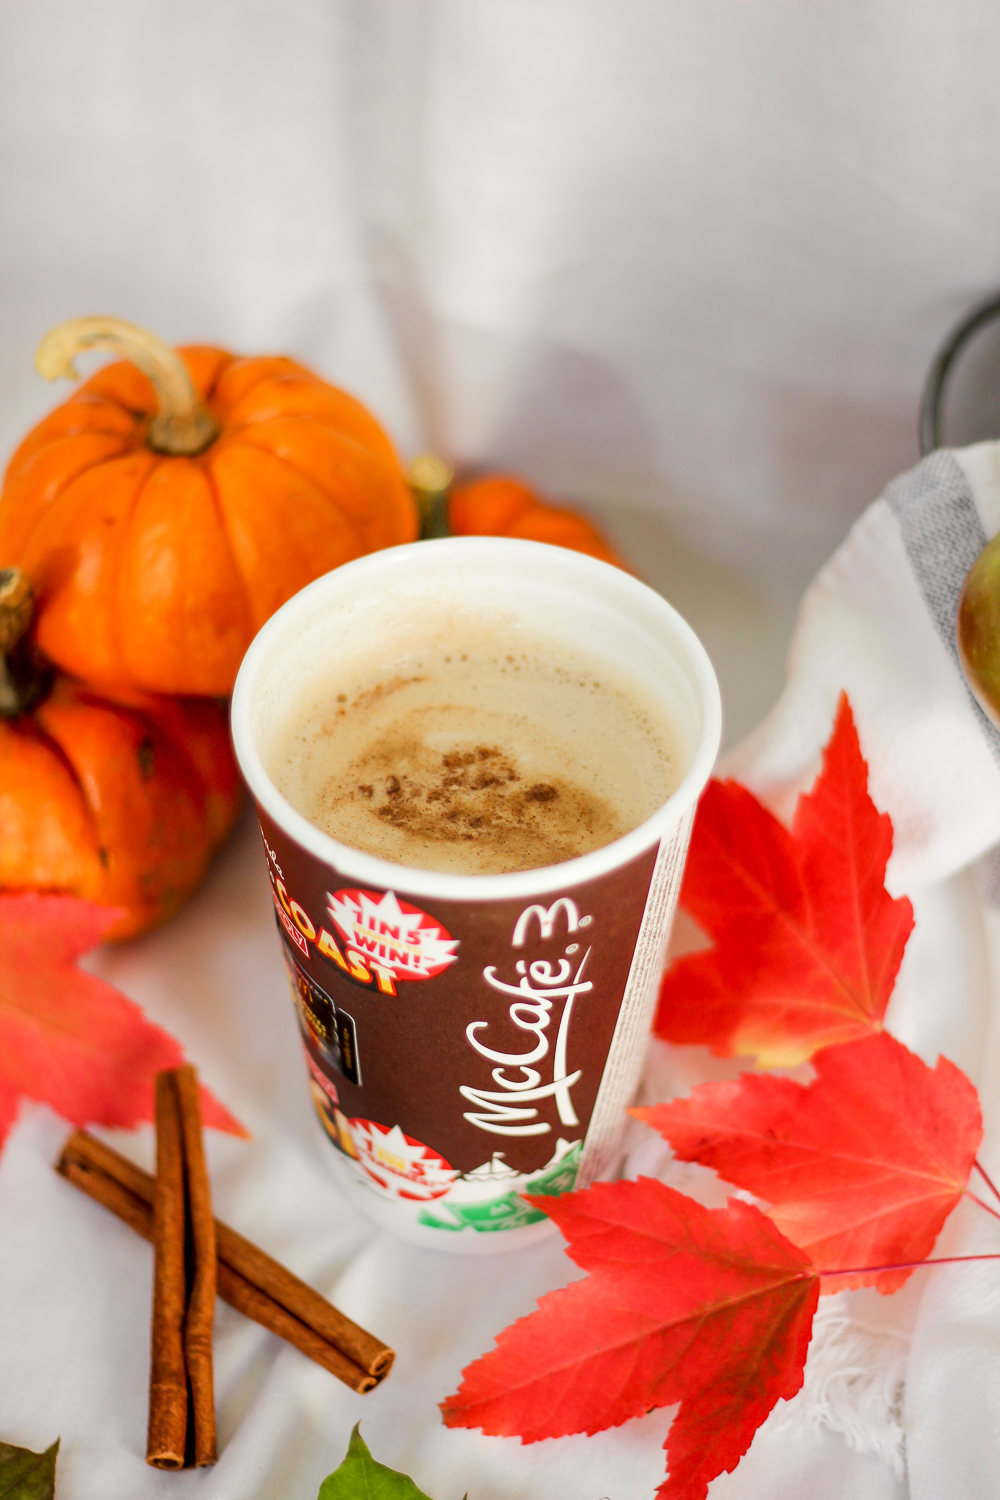 McDonald's speciality coffees, specifically, the McCafé Pumpkin Spice latte is one of my favourite fall treats